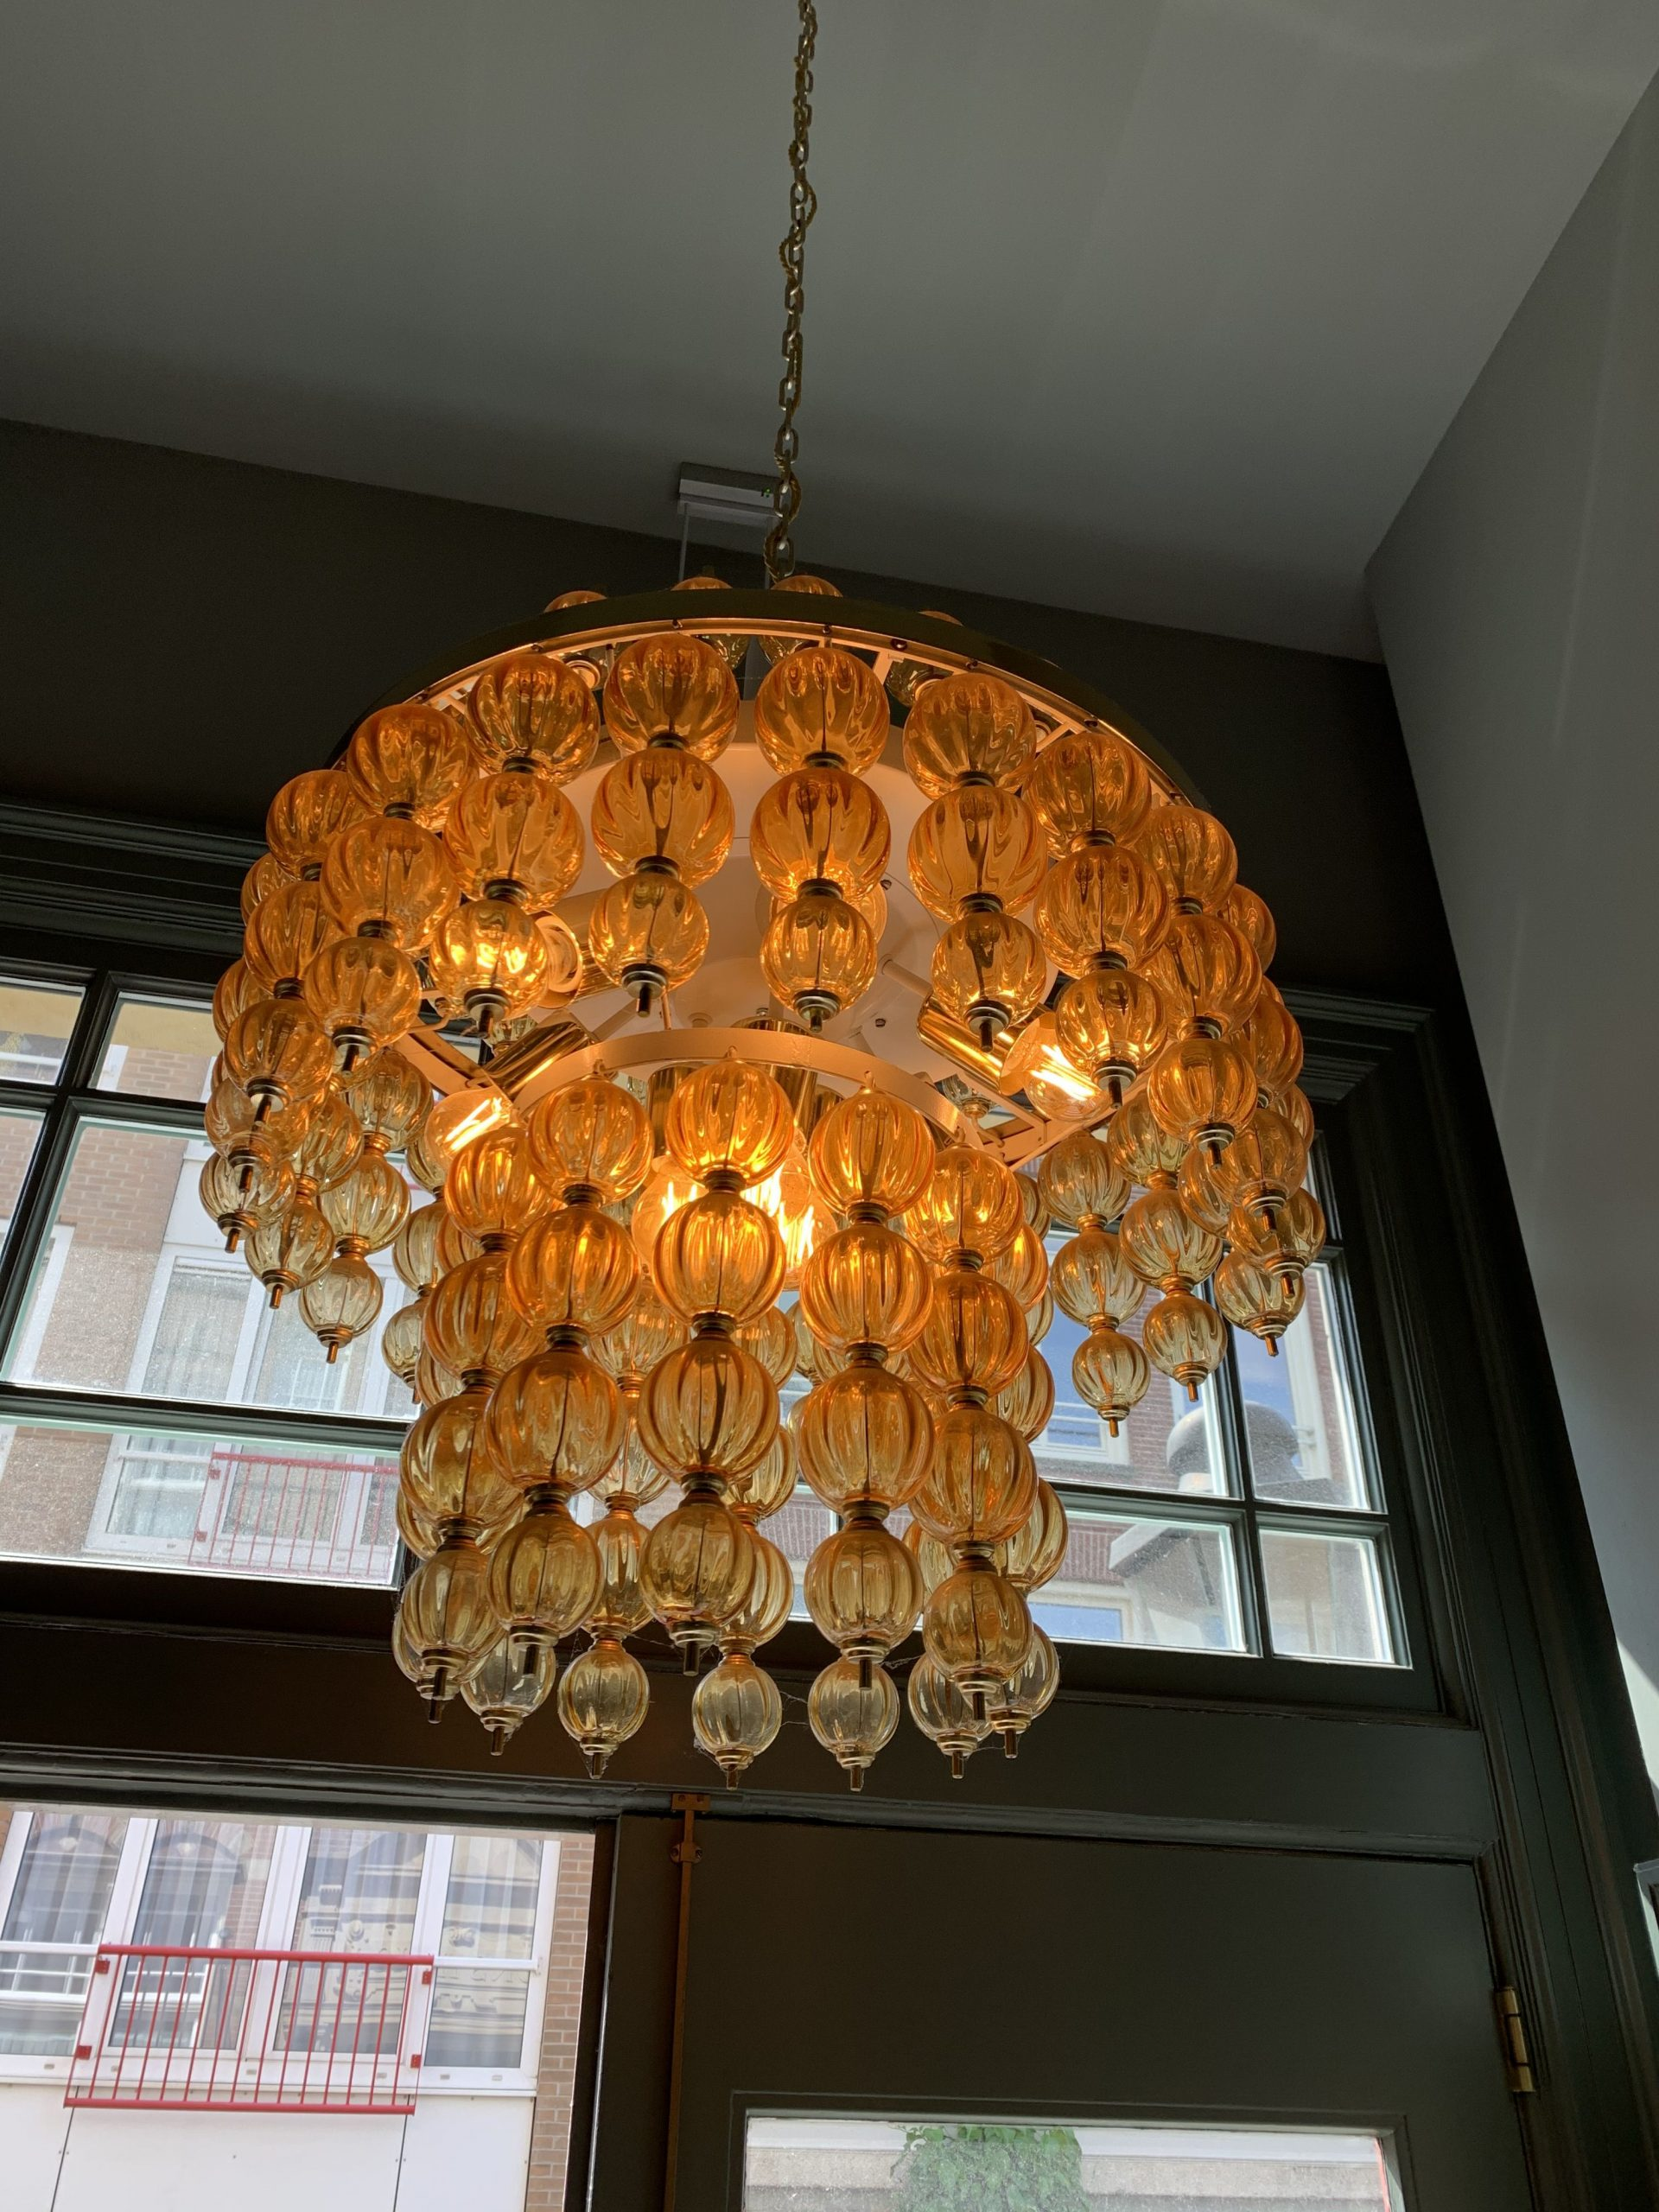 Choice of chandelier in design